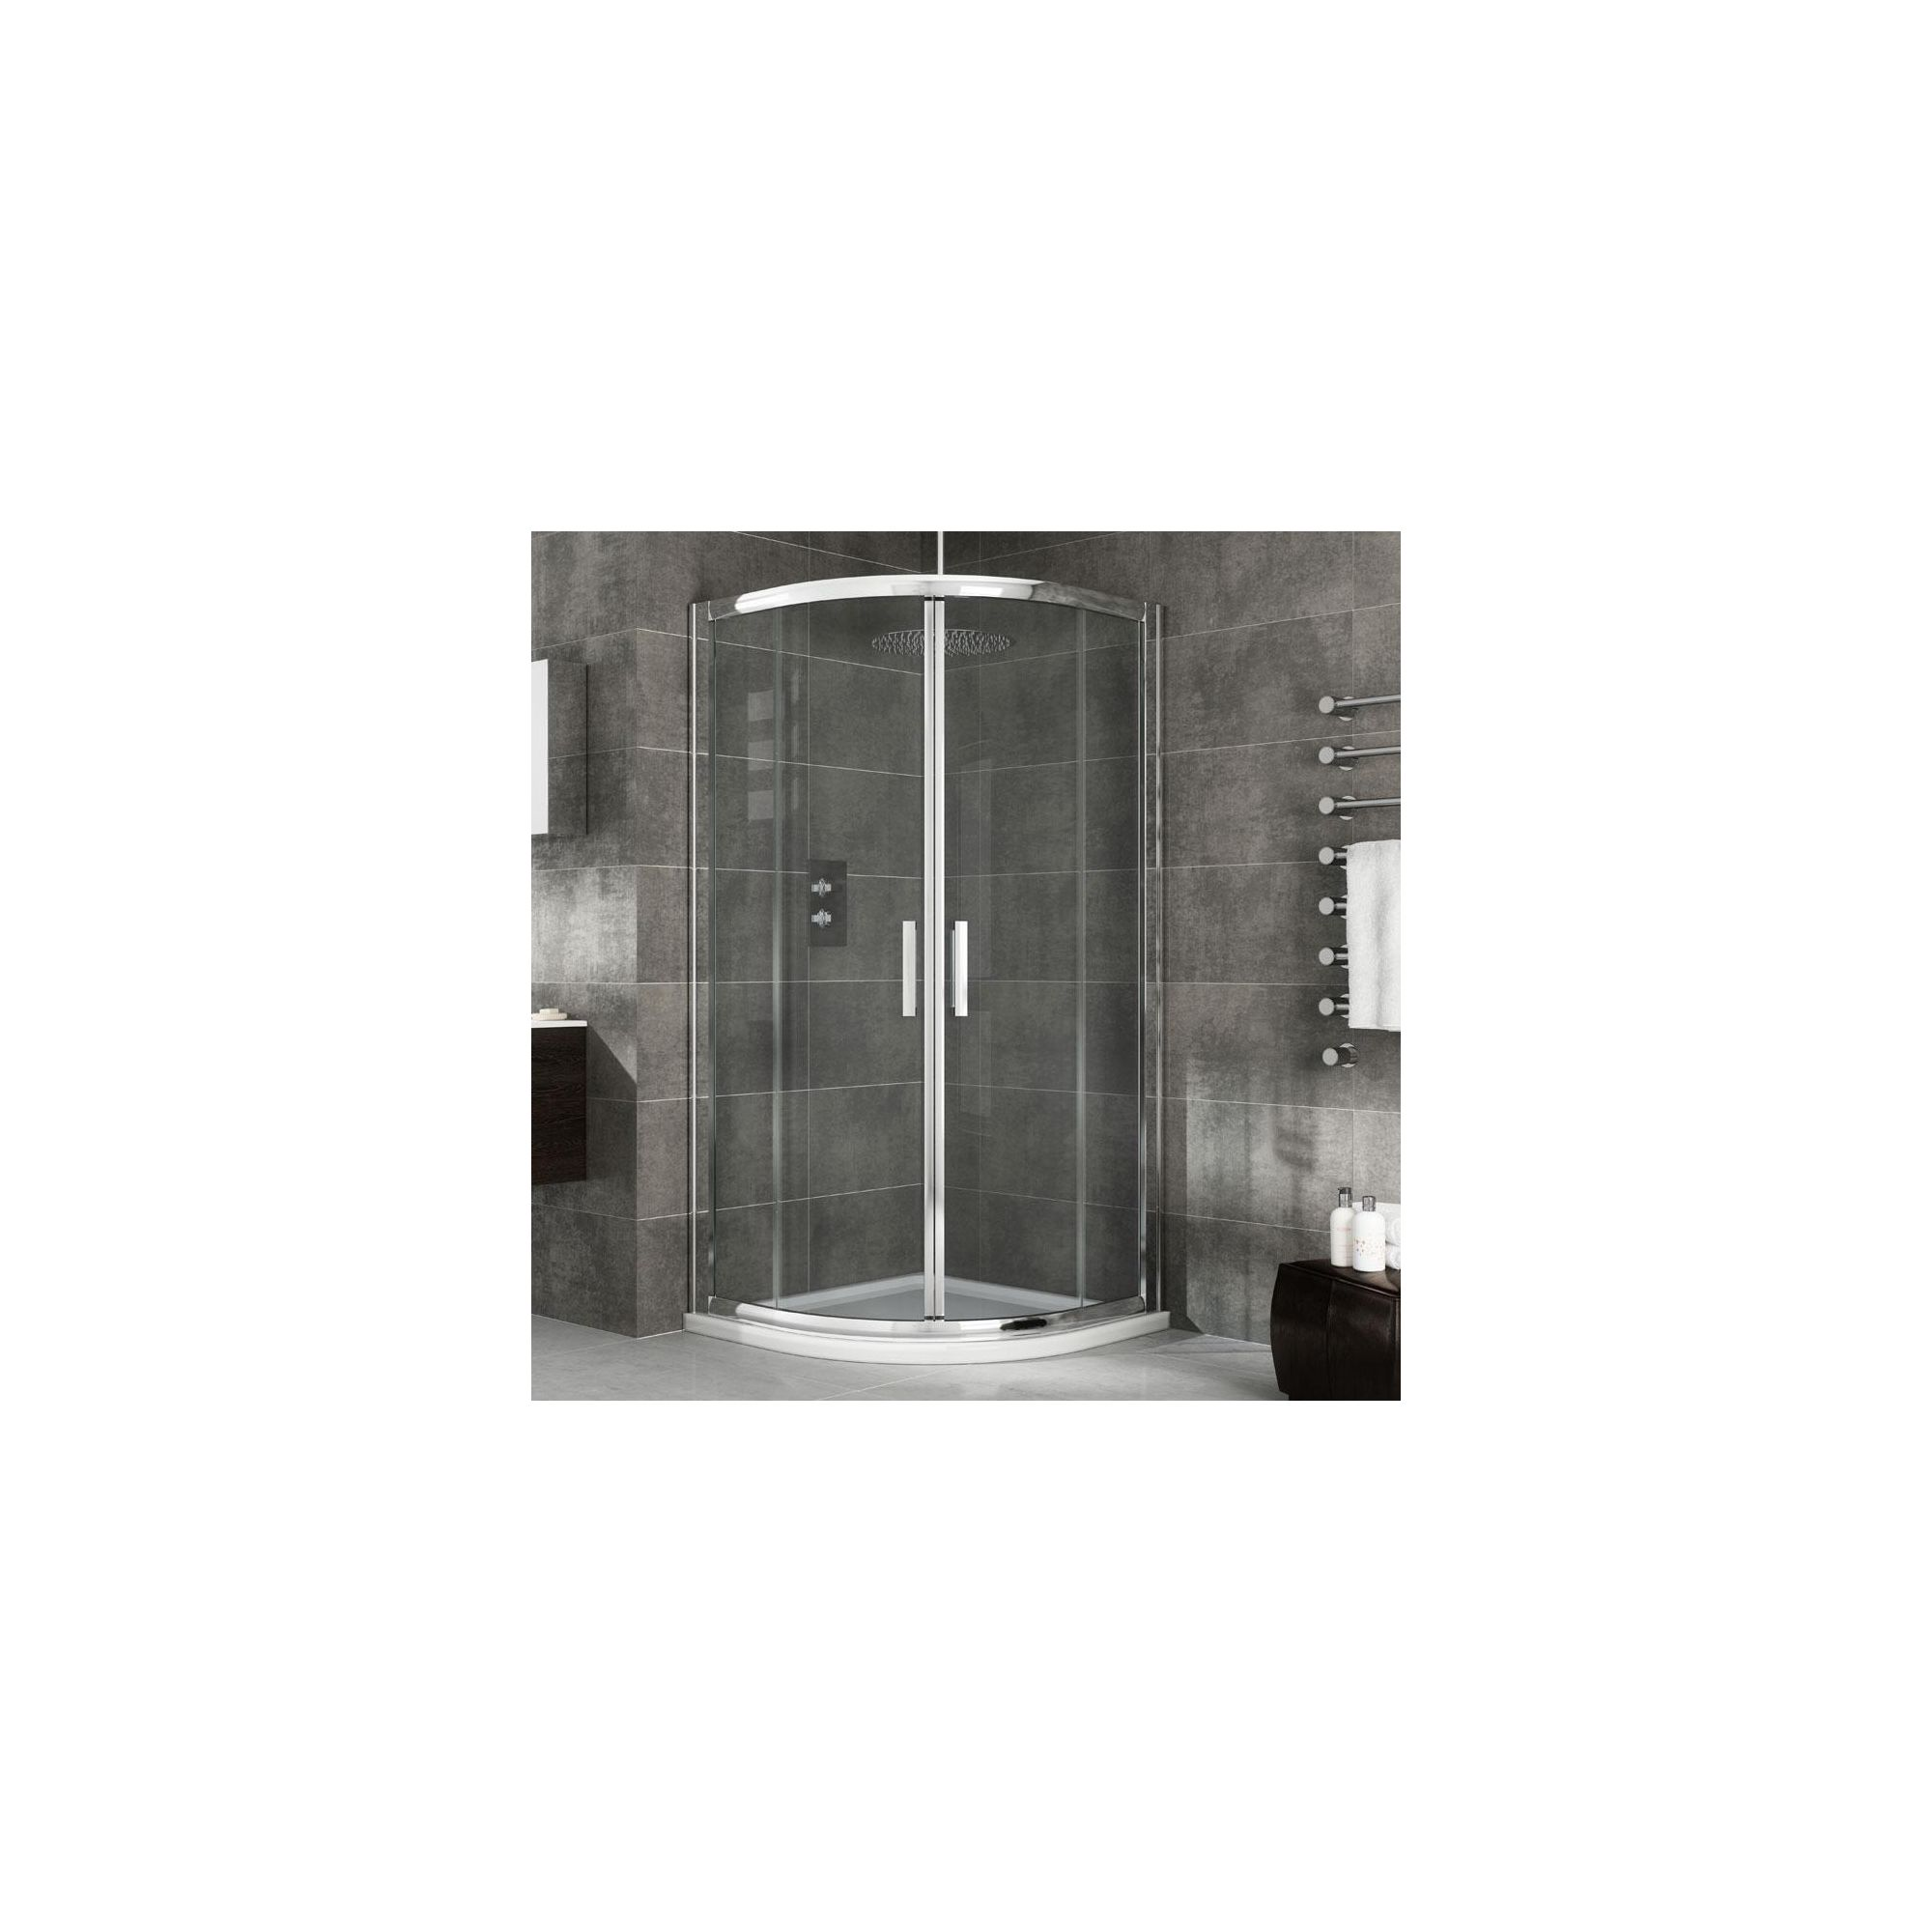 Elemis Eternity Two-Door Quadrant Shower Enclosure, 800mm x 800mm, 8mm Glass, Low Profile Tray at Tesco Direct